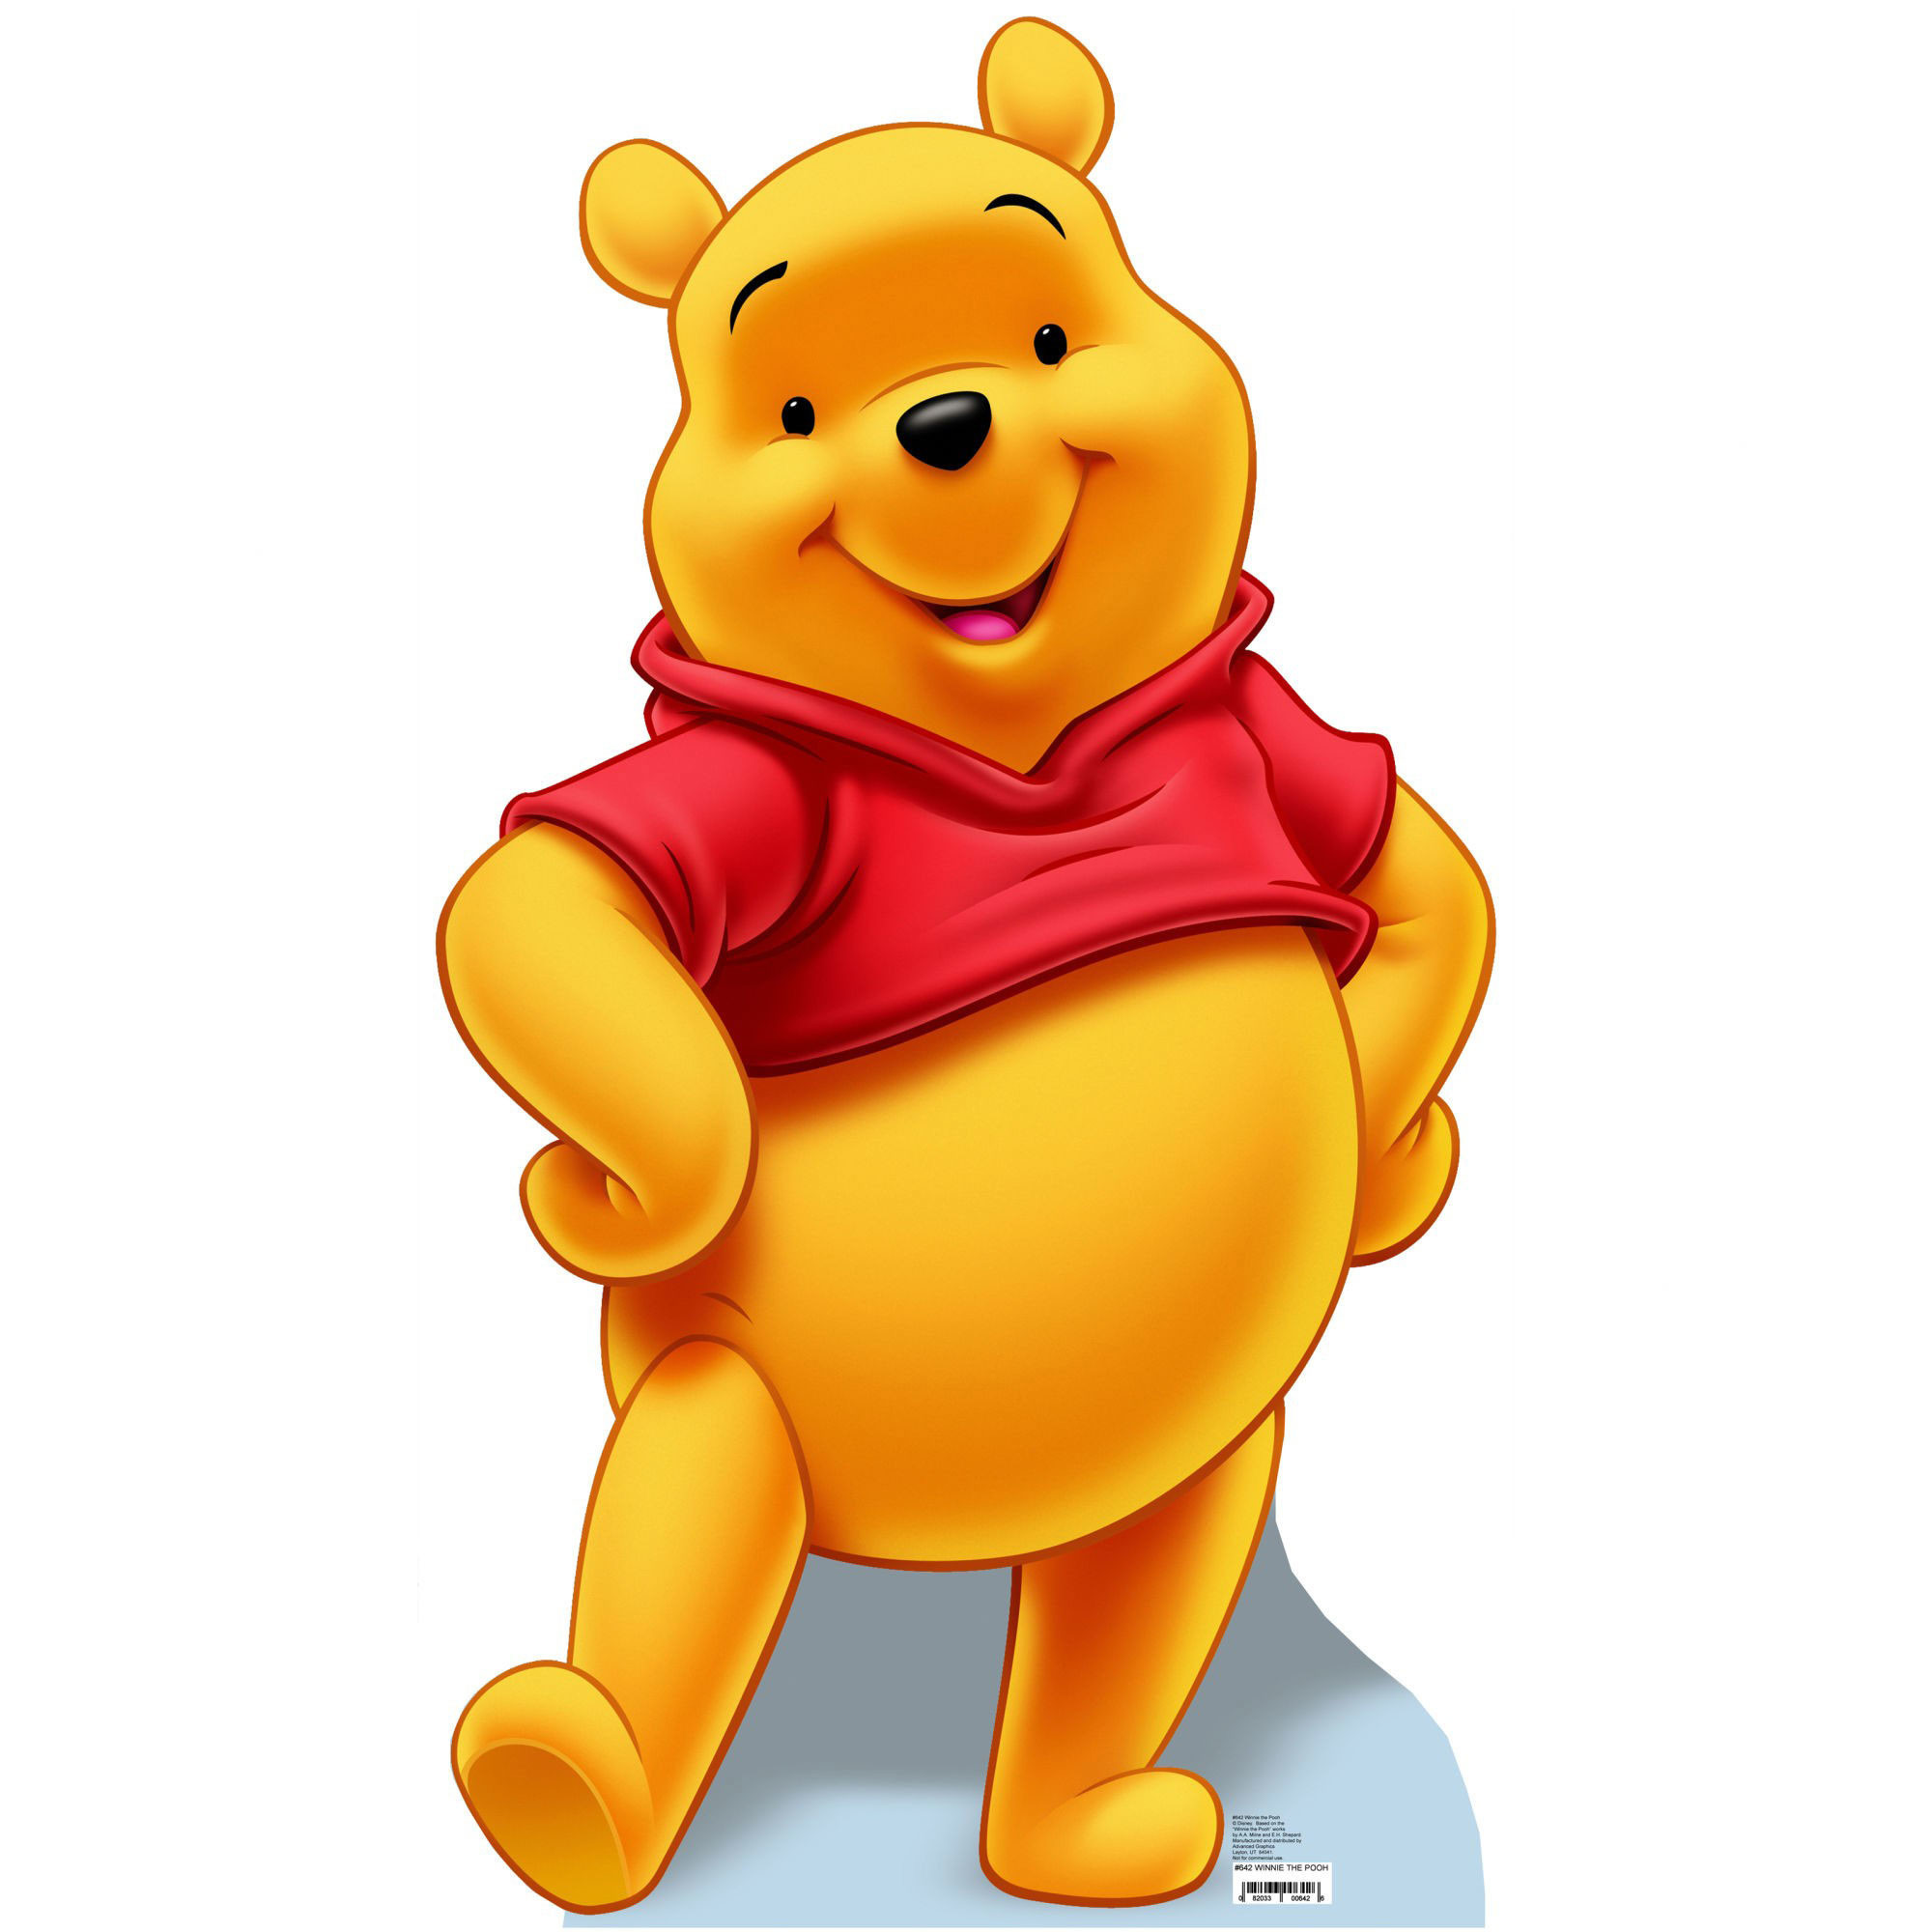 Wallpaper pooh bear 56 images 1242x2208 bear wallpaper hd wallpaper android wallpaper backgrounds iphone wallpapers tumblers pooh bear wall papers backgrounds wallpapers voltagebd Gallery